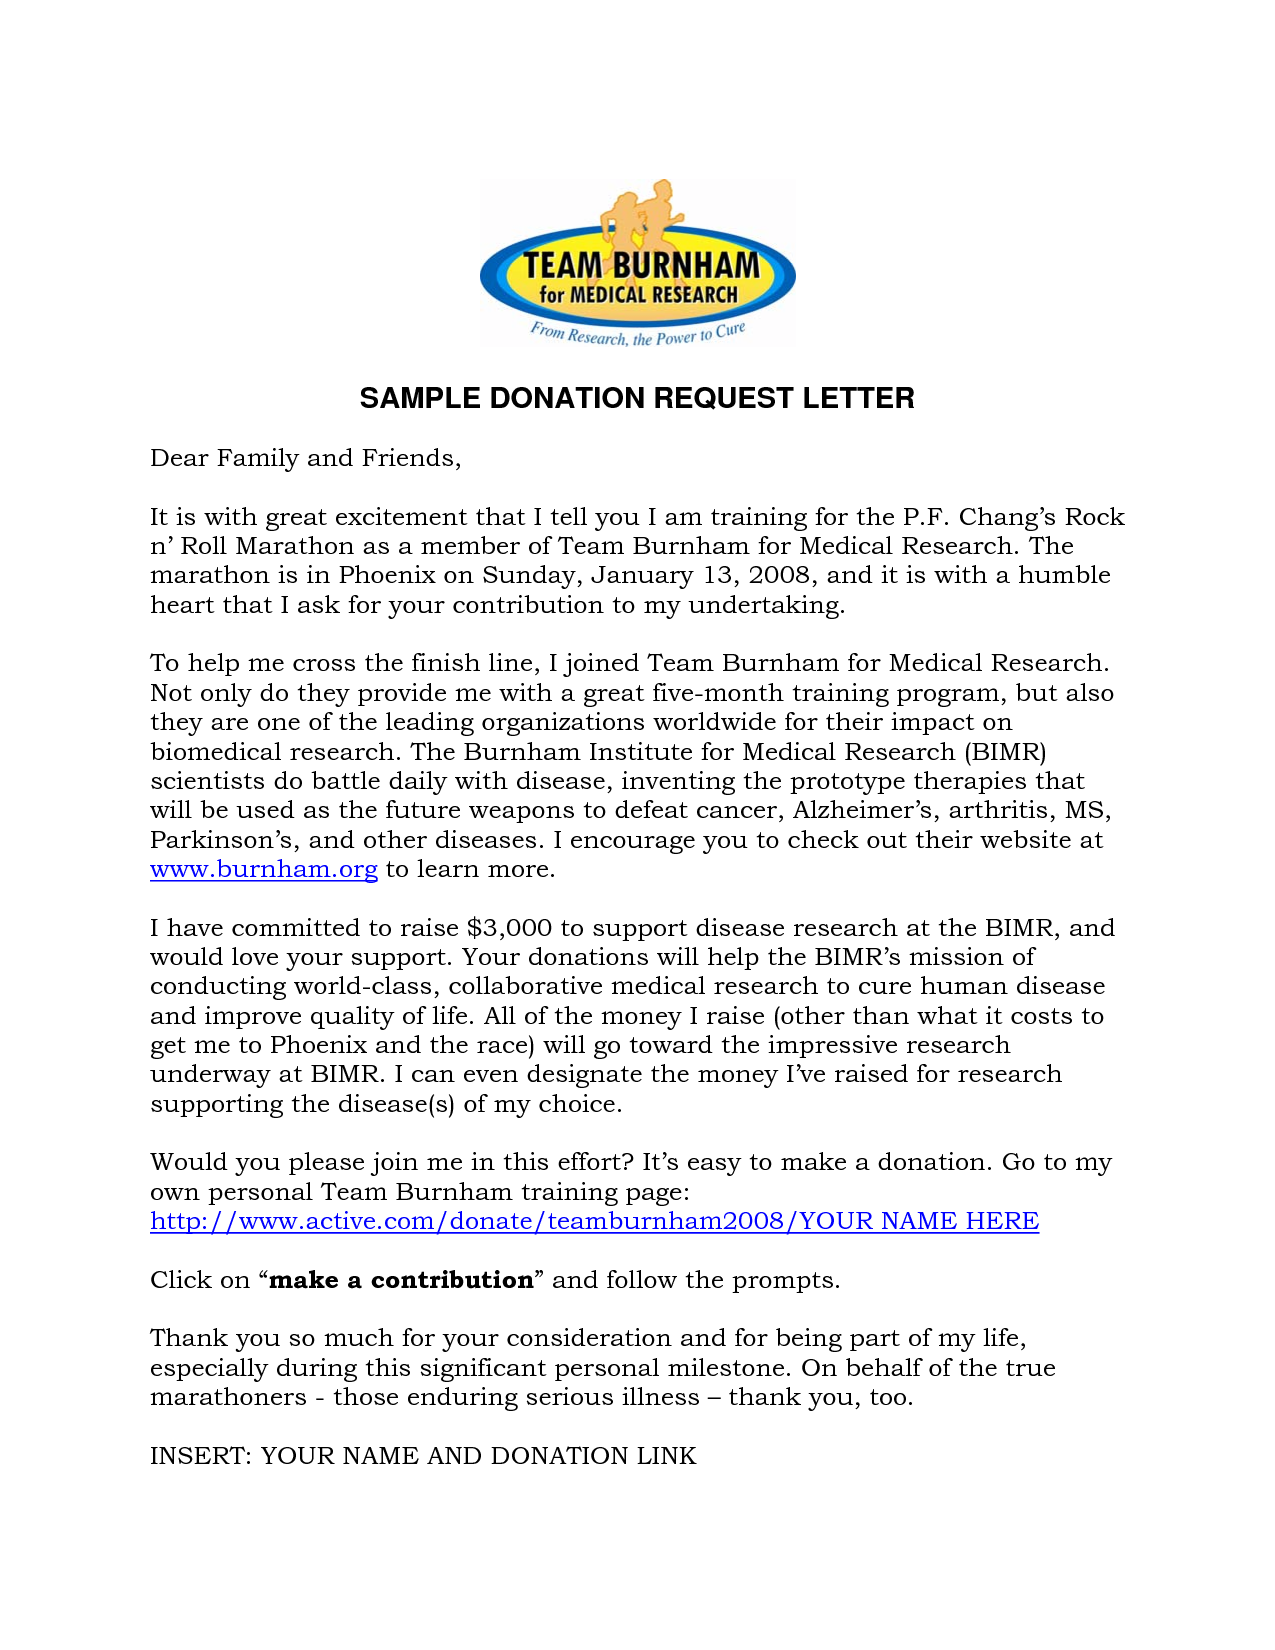 fundraisers lions forward sample donation request letter template